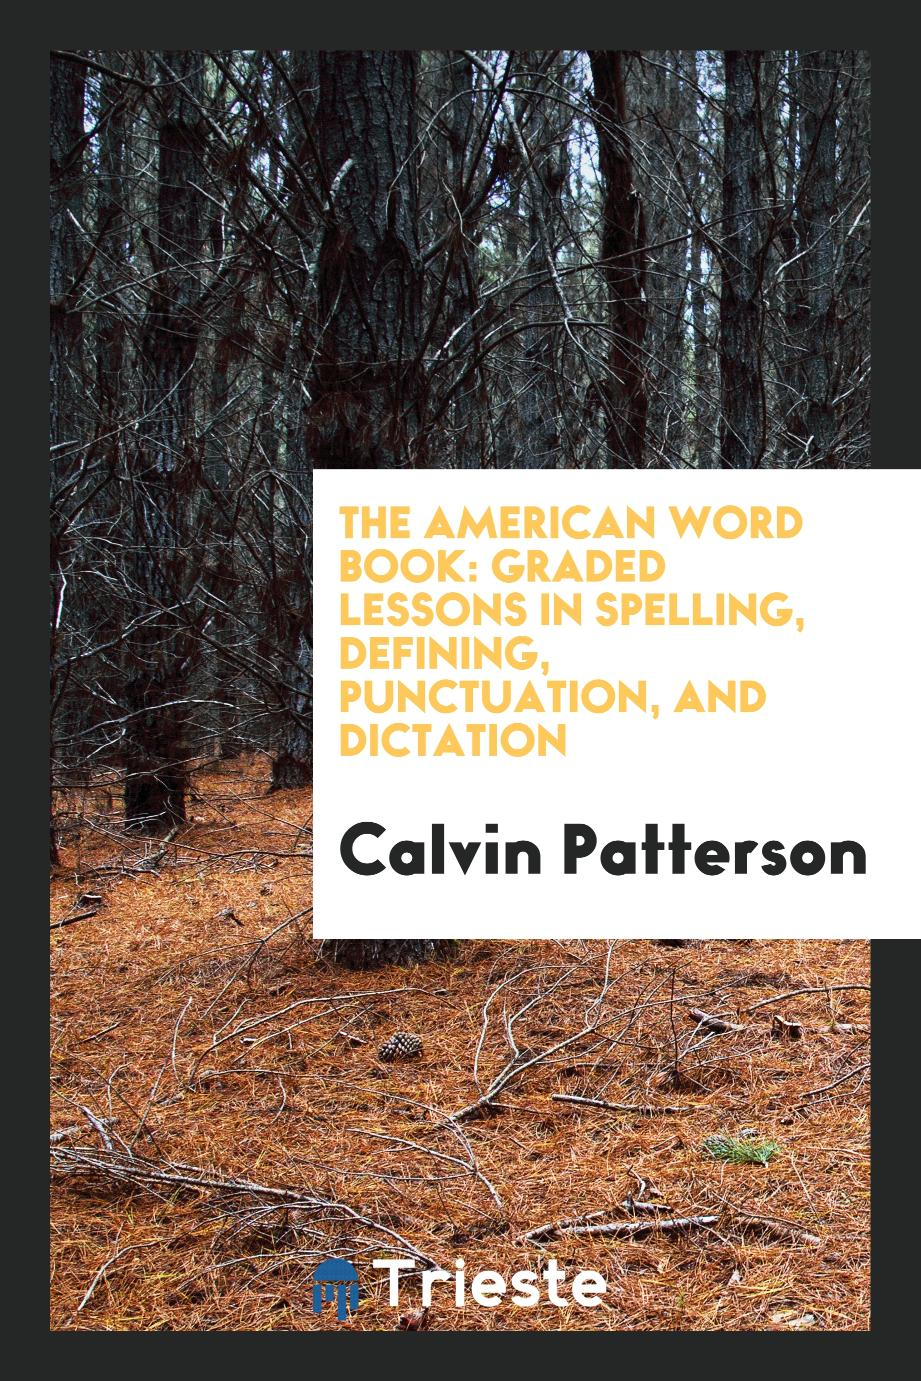 The American Word Book: Graded Lessons in Spelling, Defining, Punctuation, and Dictation